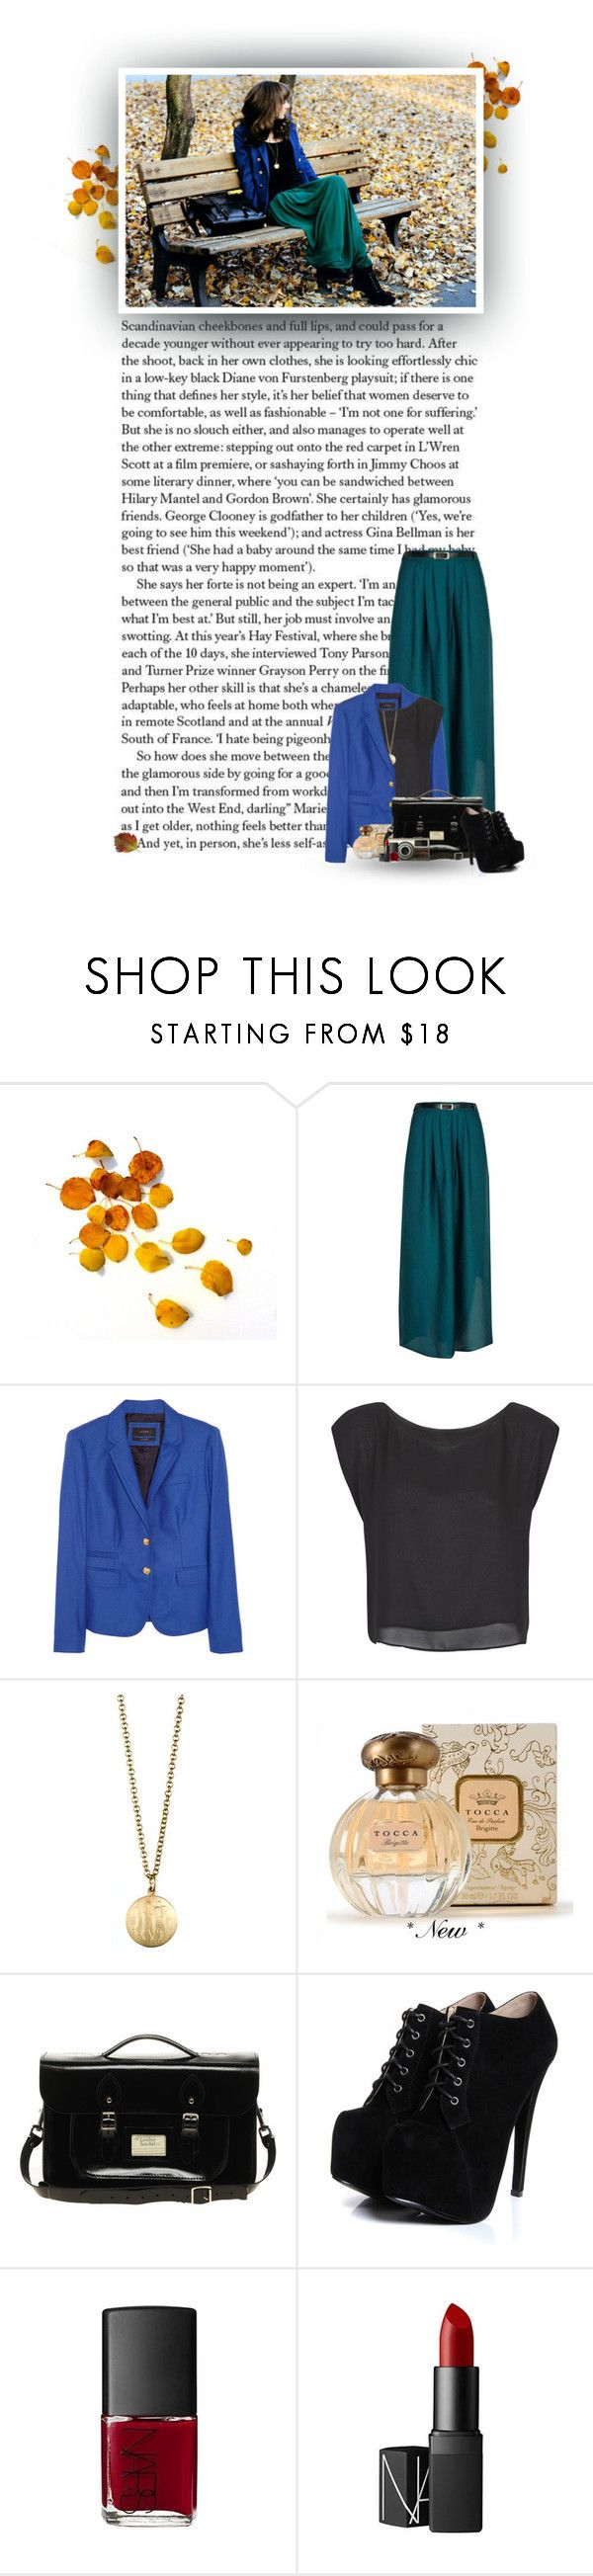 """""""If You Want To My Destroy My Sweater, Pull This Thread As I Walk Away..."""" by hollowpoint-smile ❤ liked on Polyvore featuring Cheap Monday, River Island, J.Crew, MANGO, Danielle Stevens Jewelry, Tocca, The Leather Satchel Co., Boohoo, NARS Cosmetics and ankle boots"""